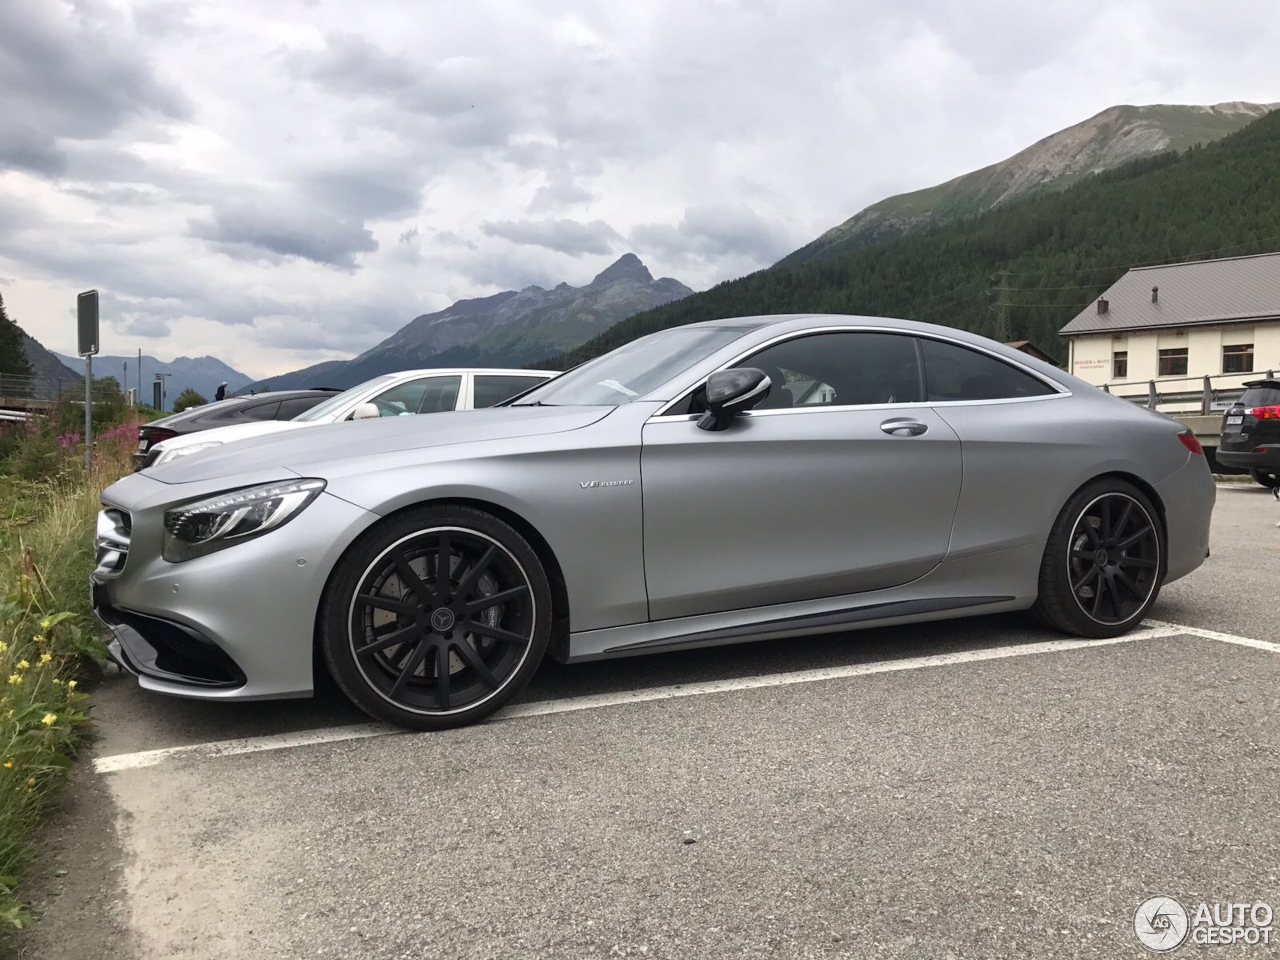 Mercedes Benz S 63 Amg Coup C217 4 October 2017